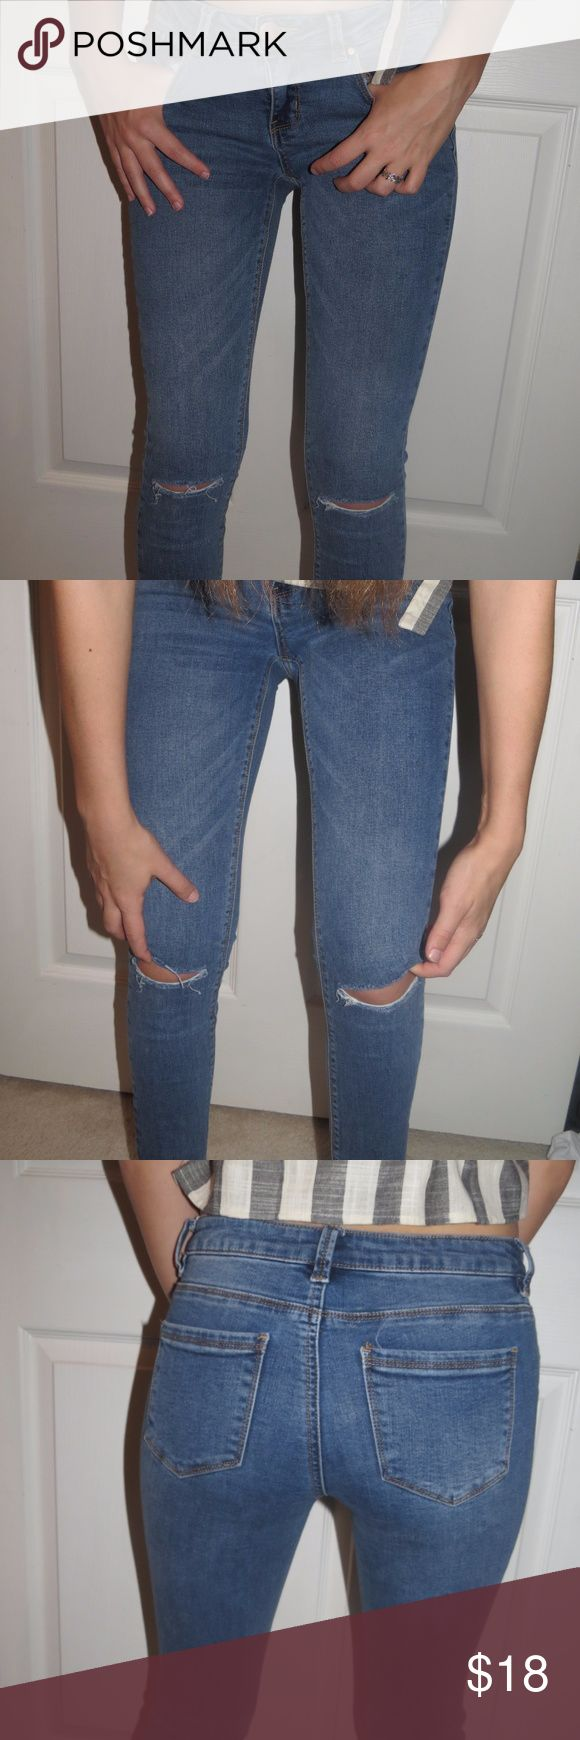 Ankle Cutoff Jeans These jeans are low rise, cutoff at the ankle, and have slits in the knees. I did not cut these jeans at all, they were made this way! Love Fire Jeans Ankle & Cropped